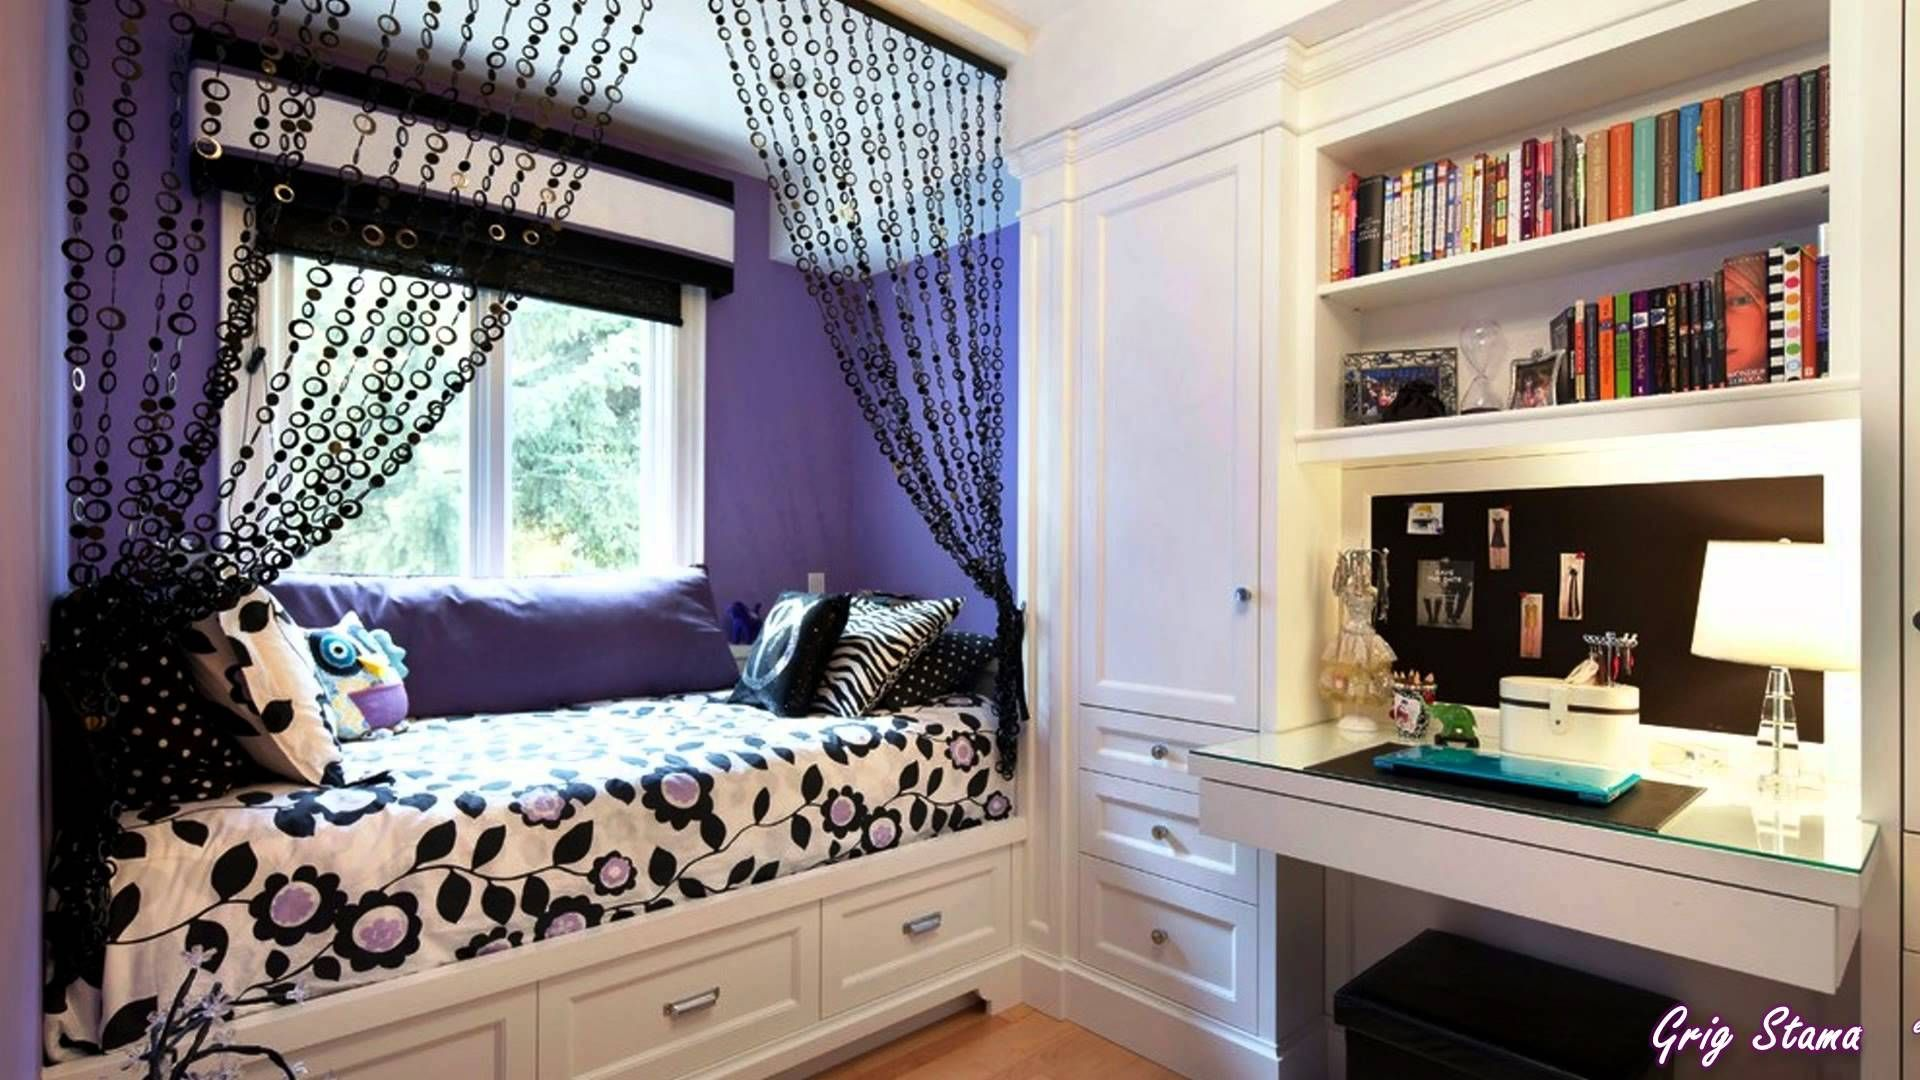 Bedroom girls tumblr ideas - Bedroom Ideas For Teenage Girls Tumblr Simple Cosmoplast Biz